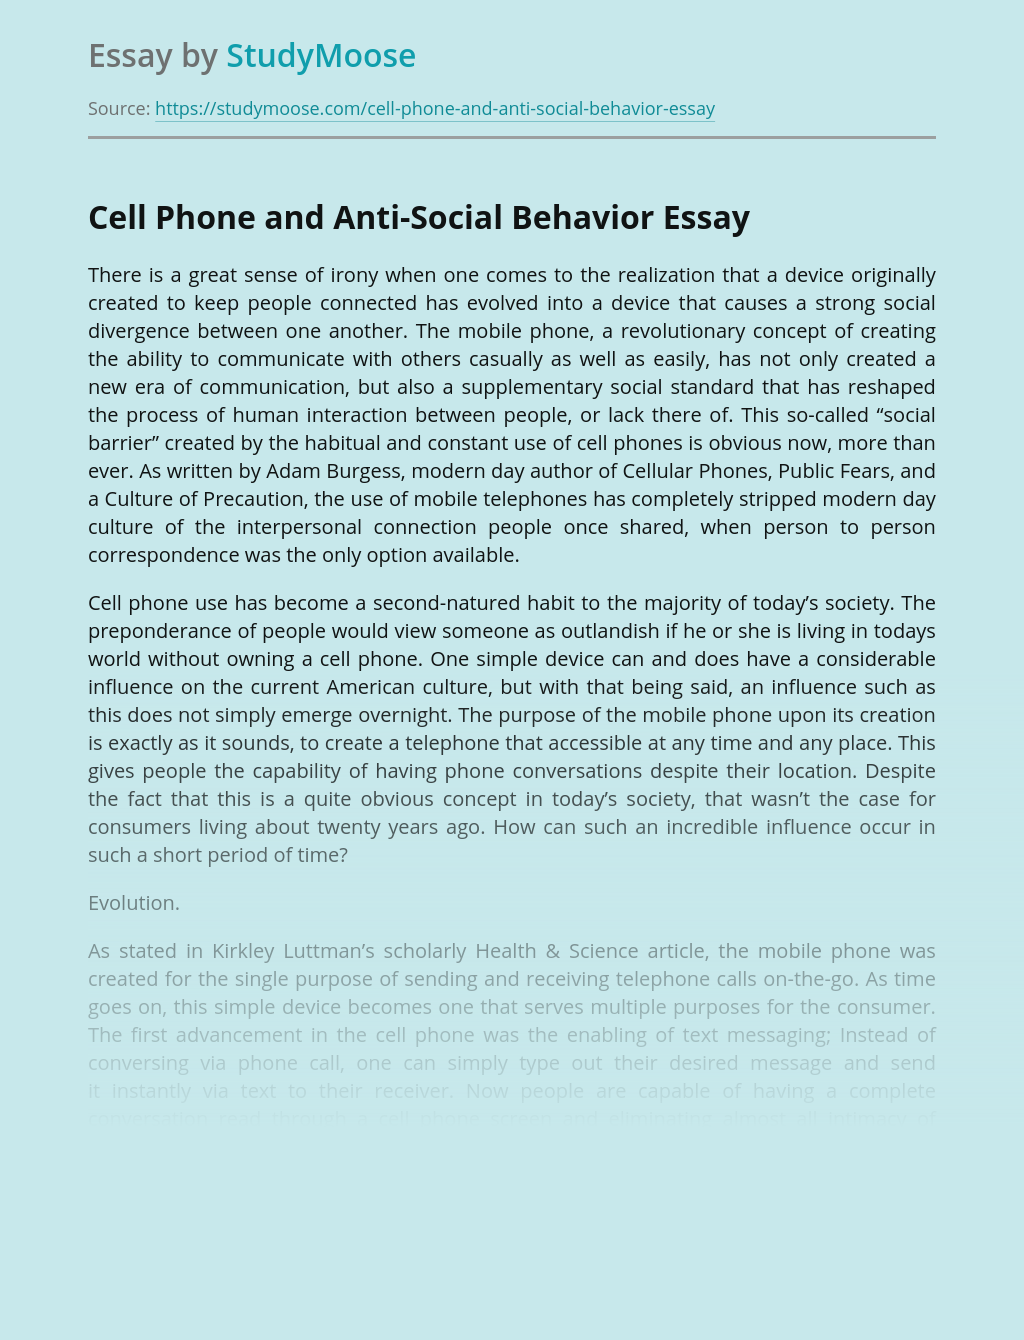 Cell Phone and Anti-Social Behavior